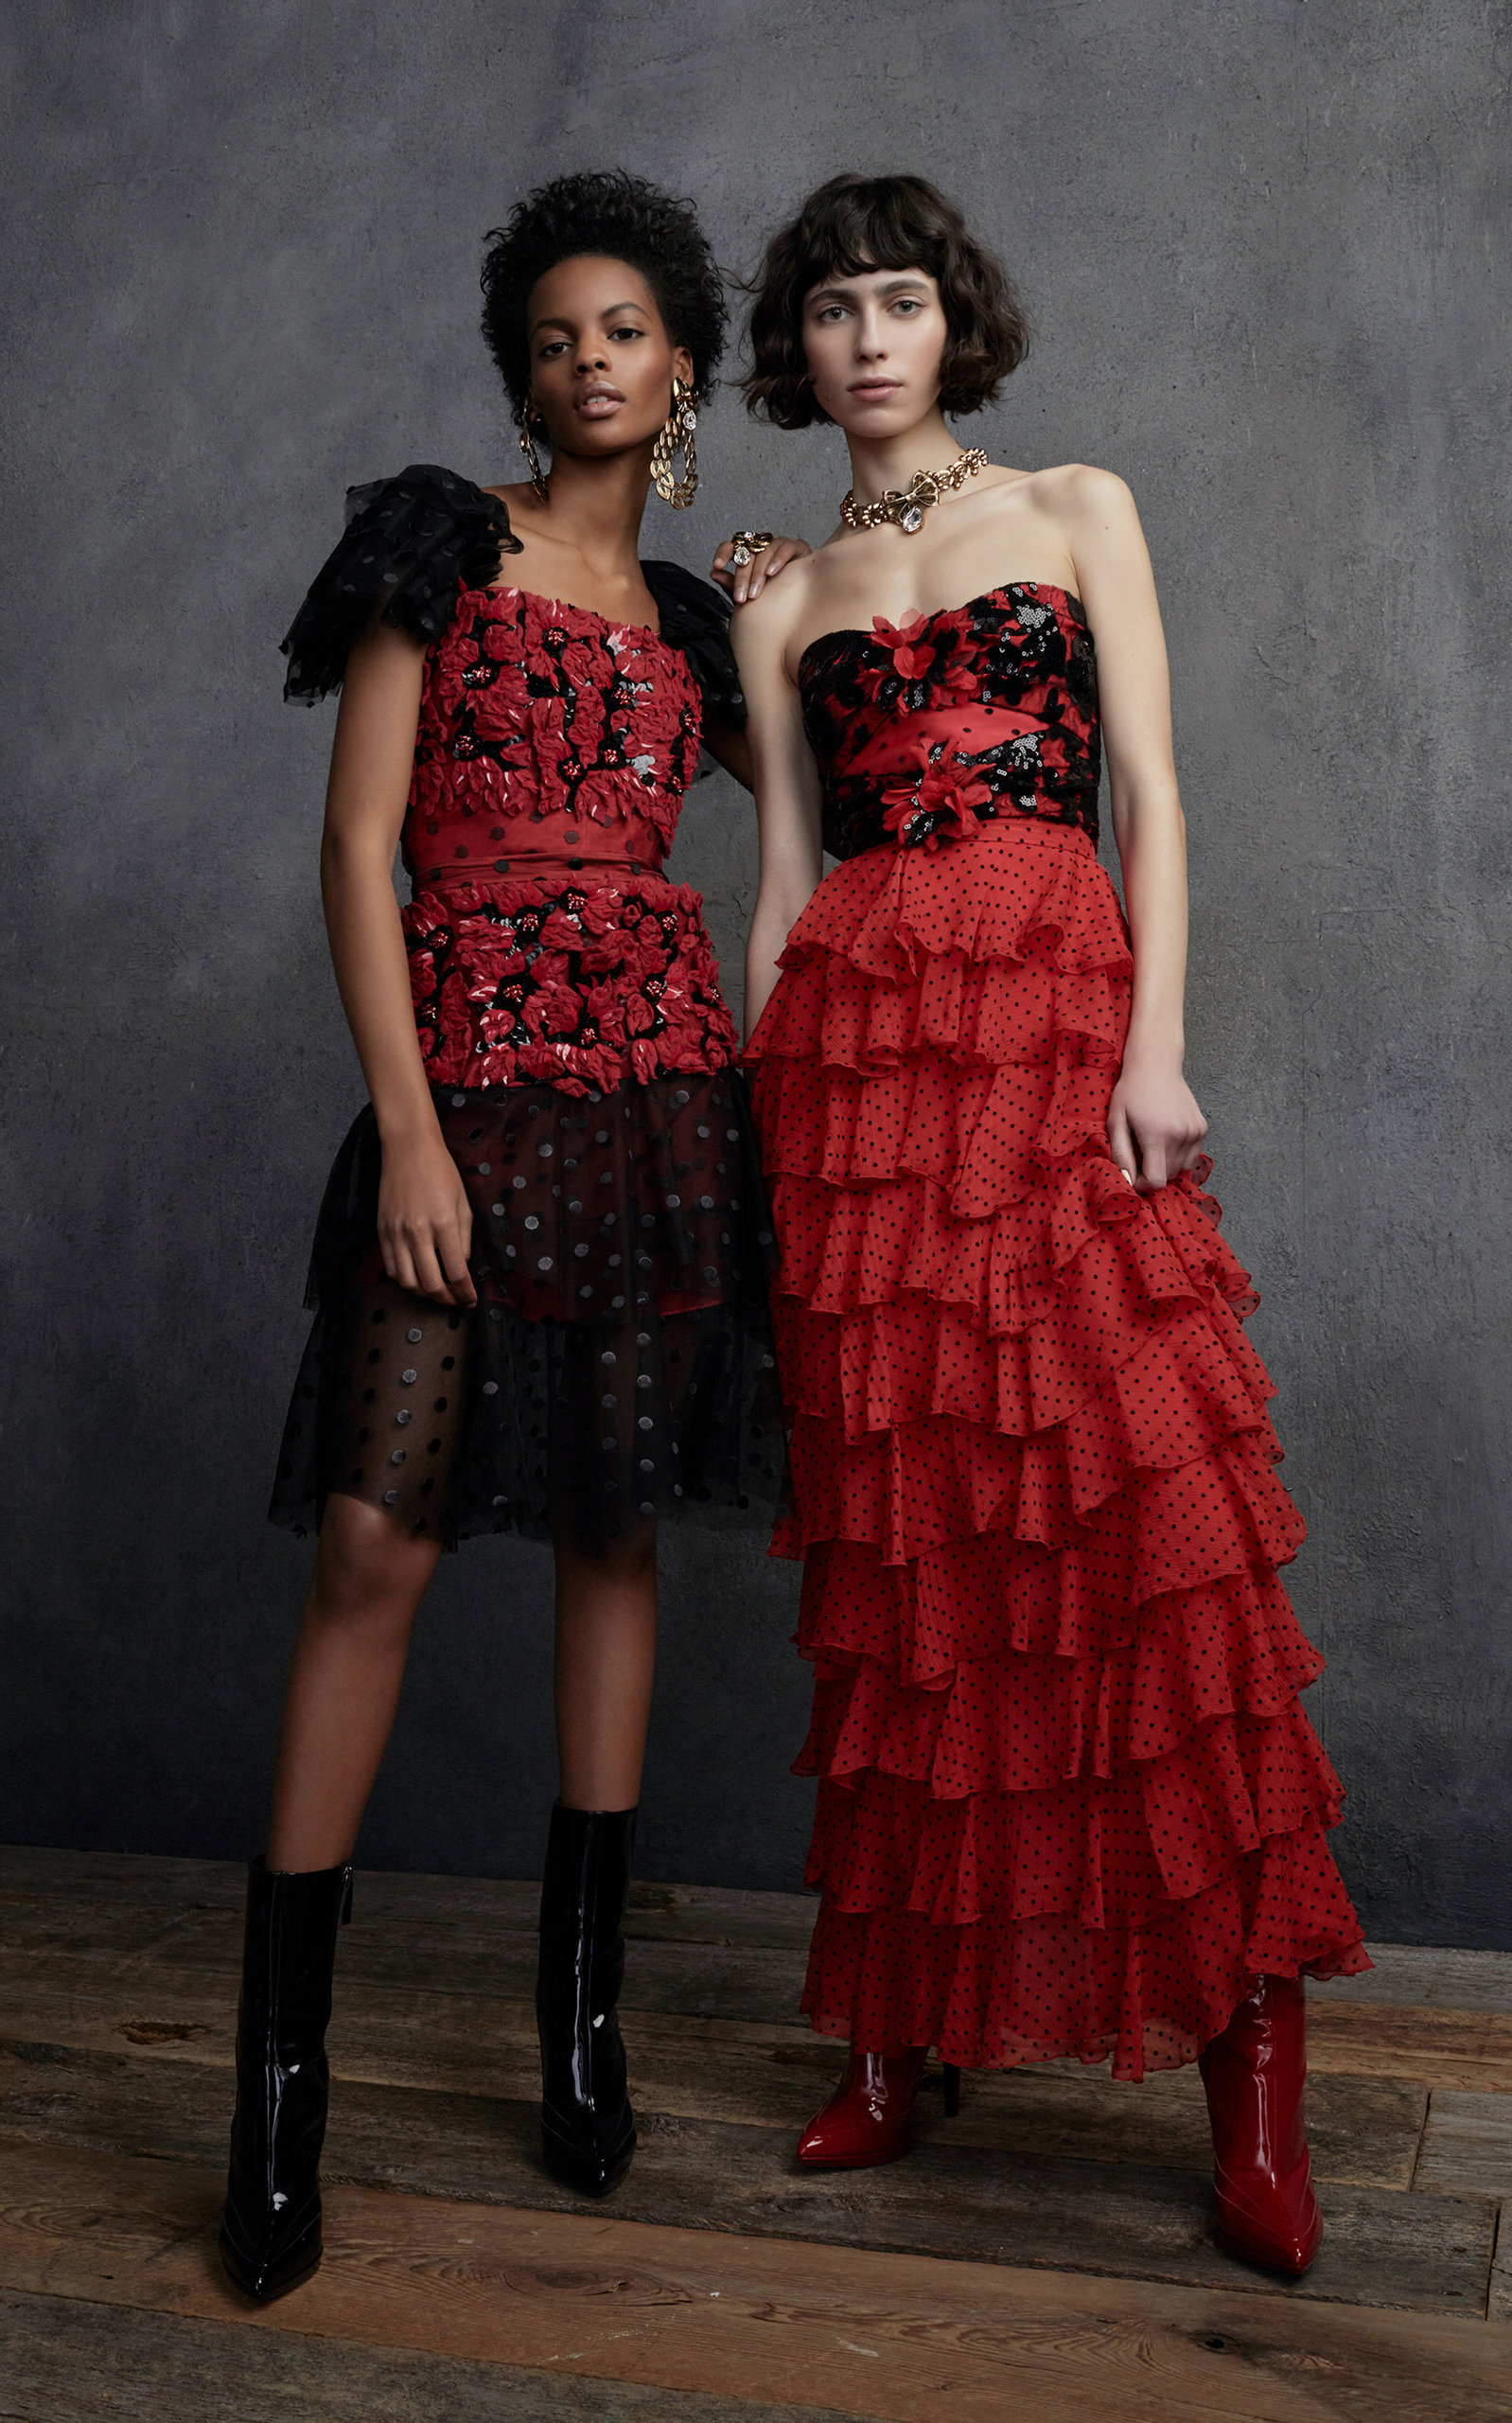 e6b147ce806e large rodarte-print-m-o-exclusive-poinsettia-flower-layered-tulle-skirt.jpg